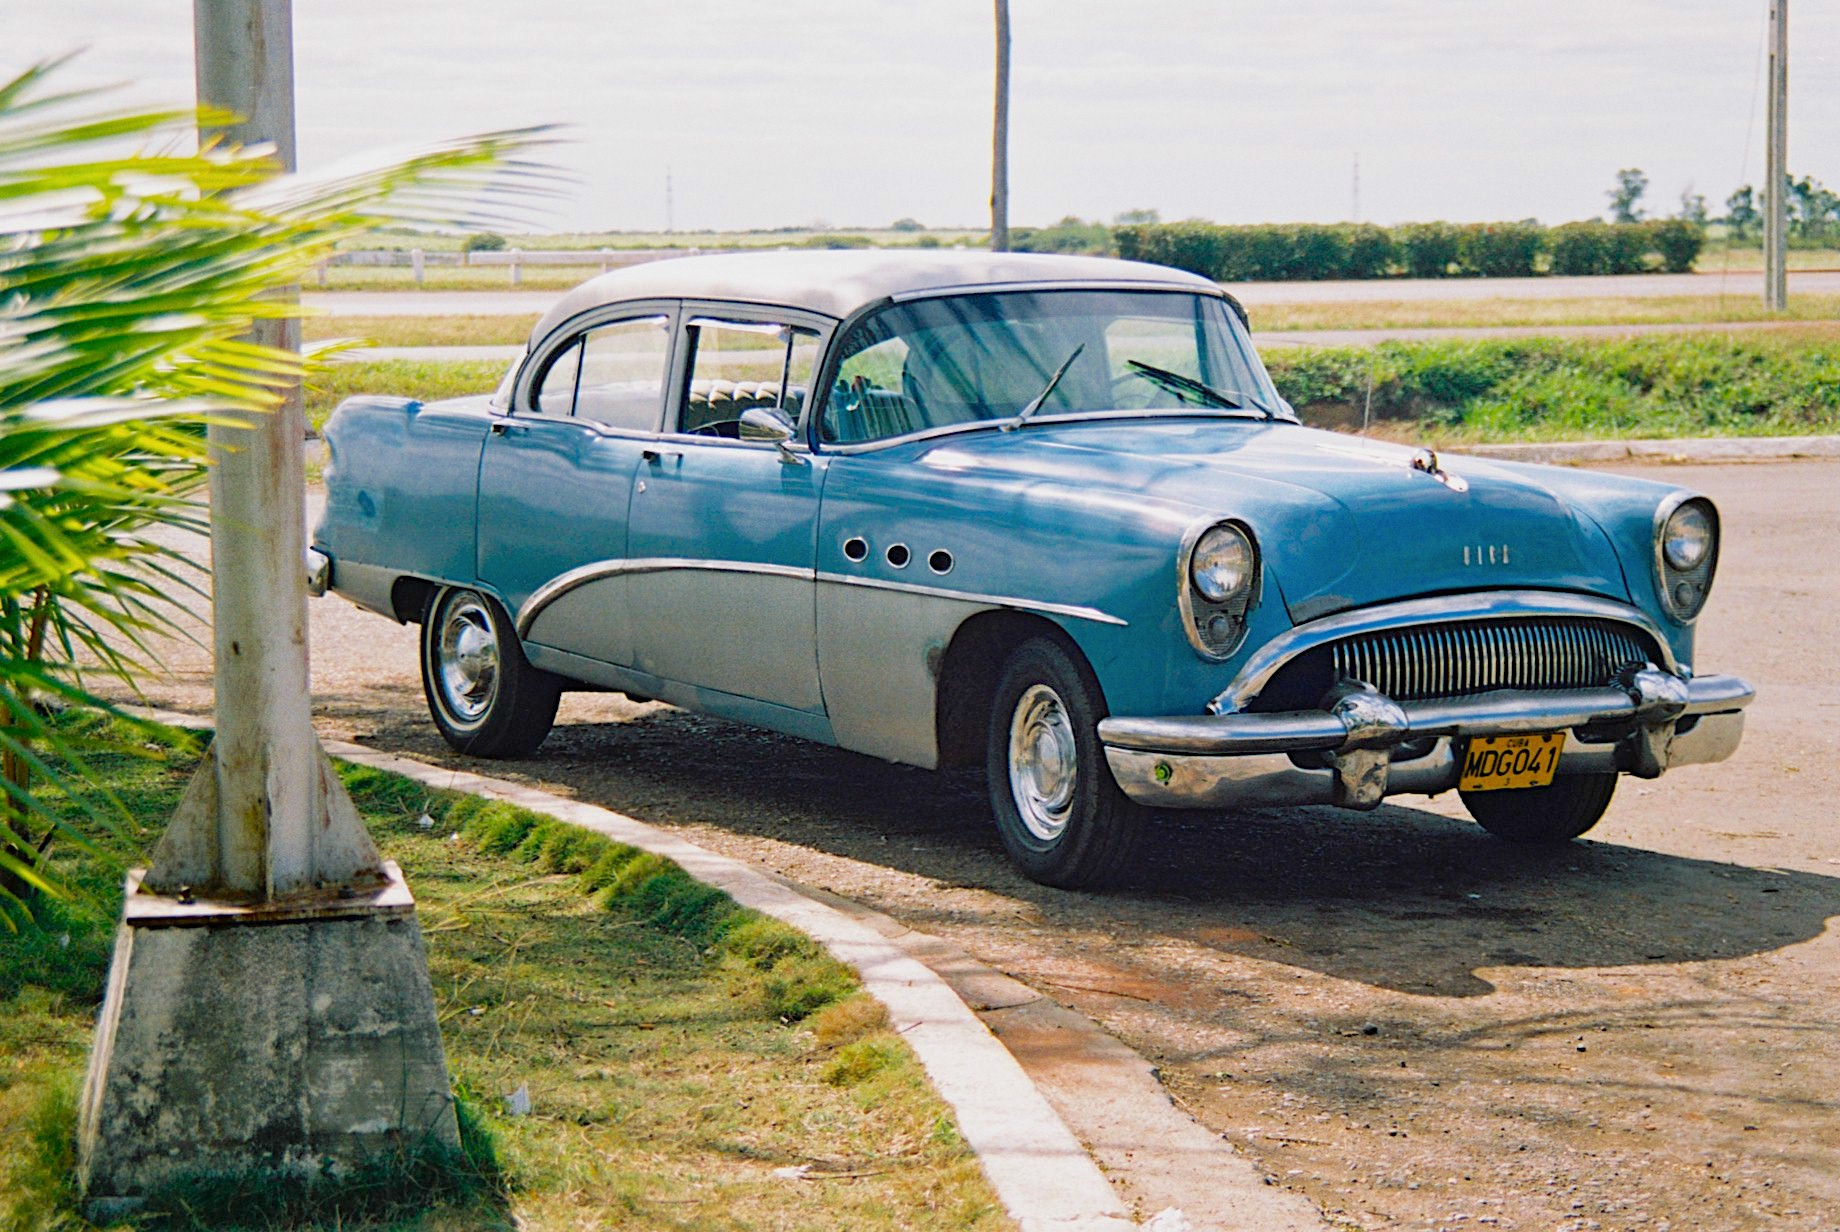 voiture bleue-cuba-wordpress-daniel fohr